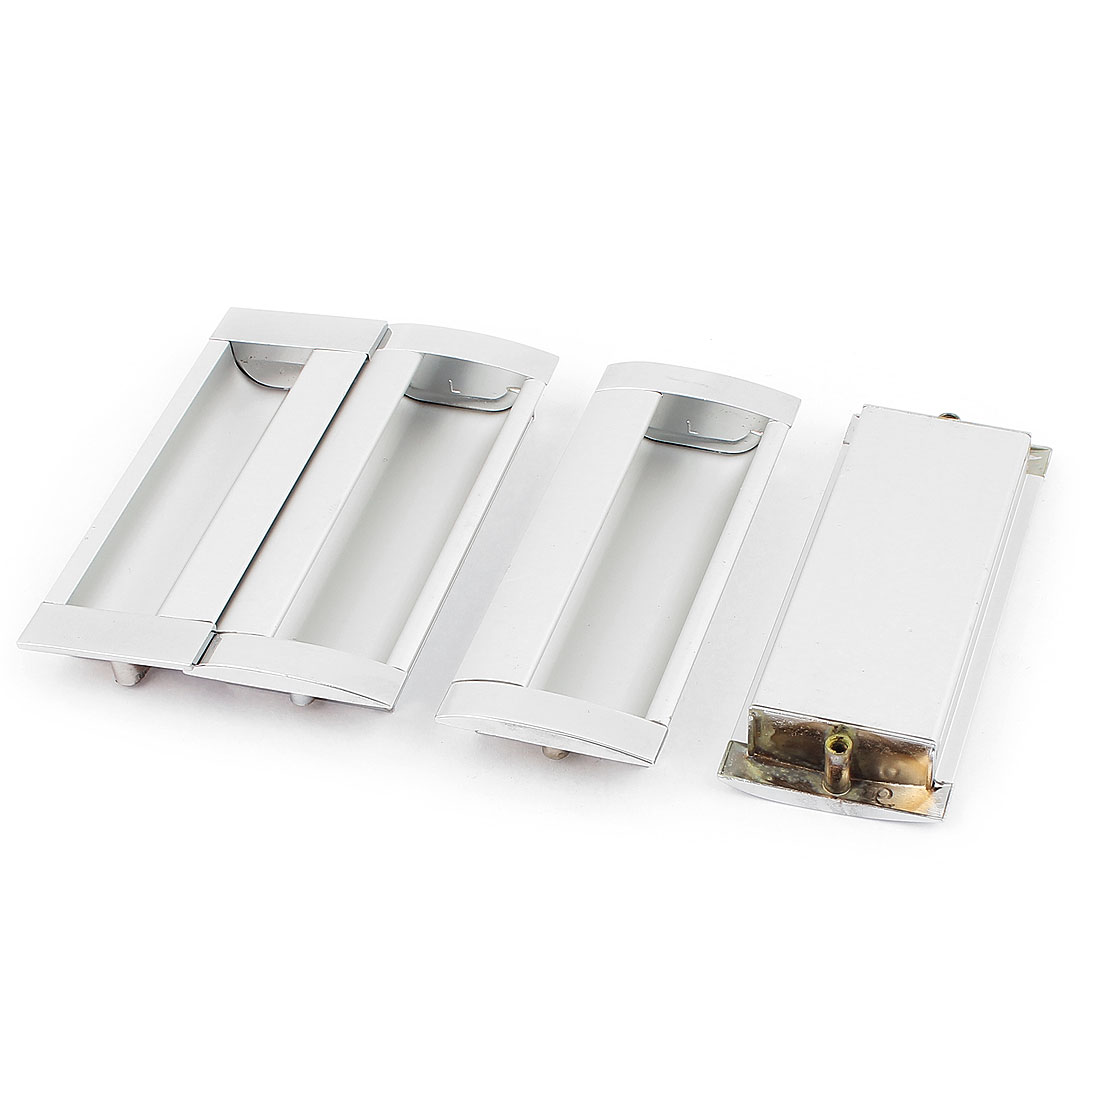 4pcs Metal Rectangle Shape Concealed Drawer Door Finger Insert Recessed Flush Pull Handle